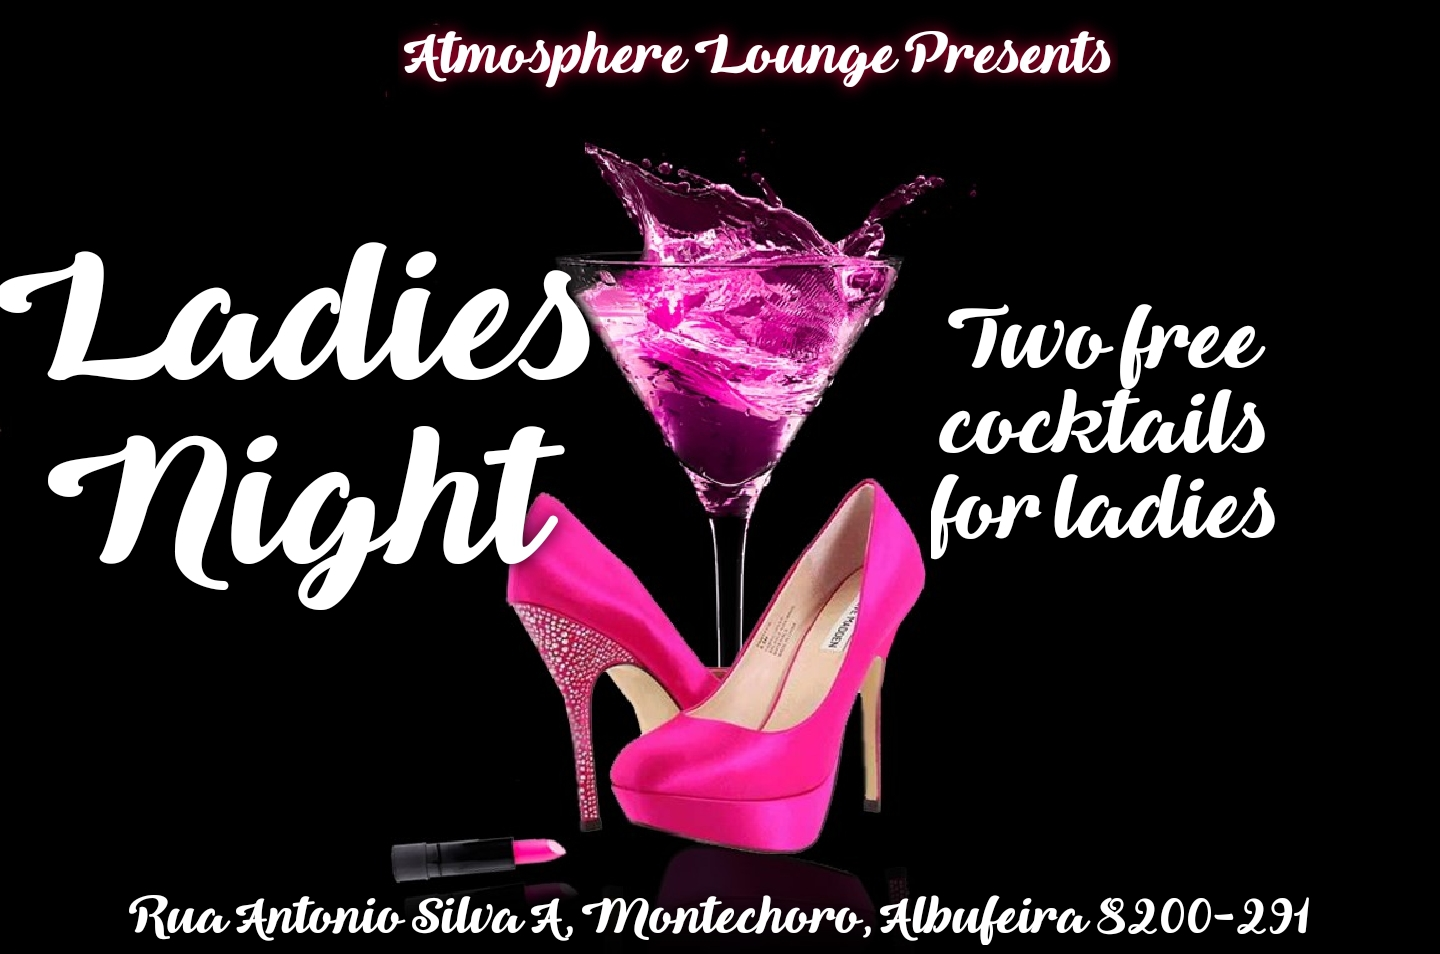 Ladies Night @ Atmosphere Lounge